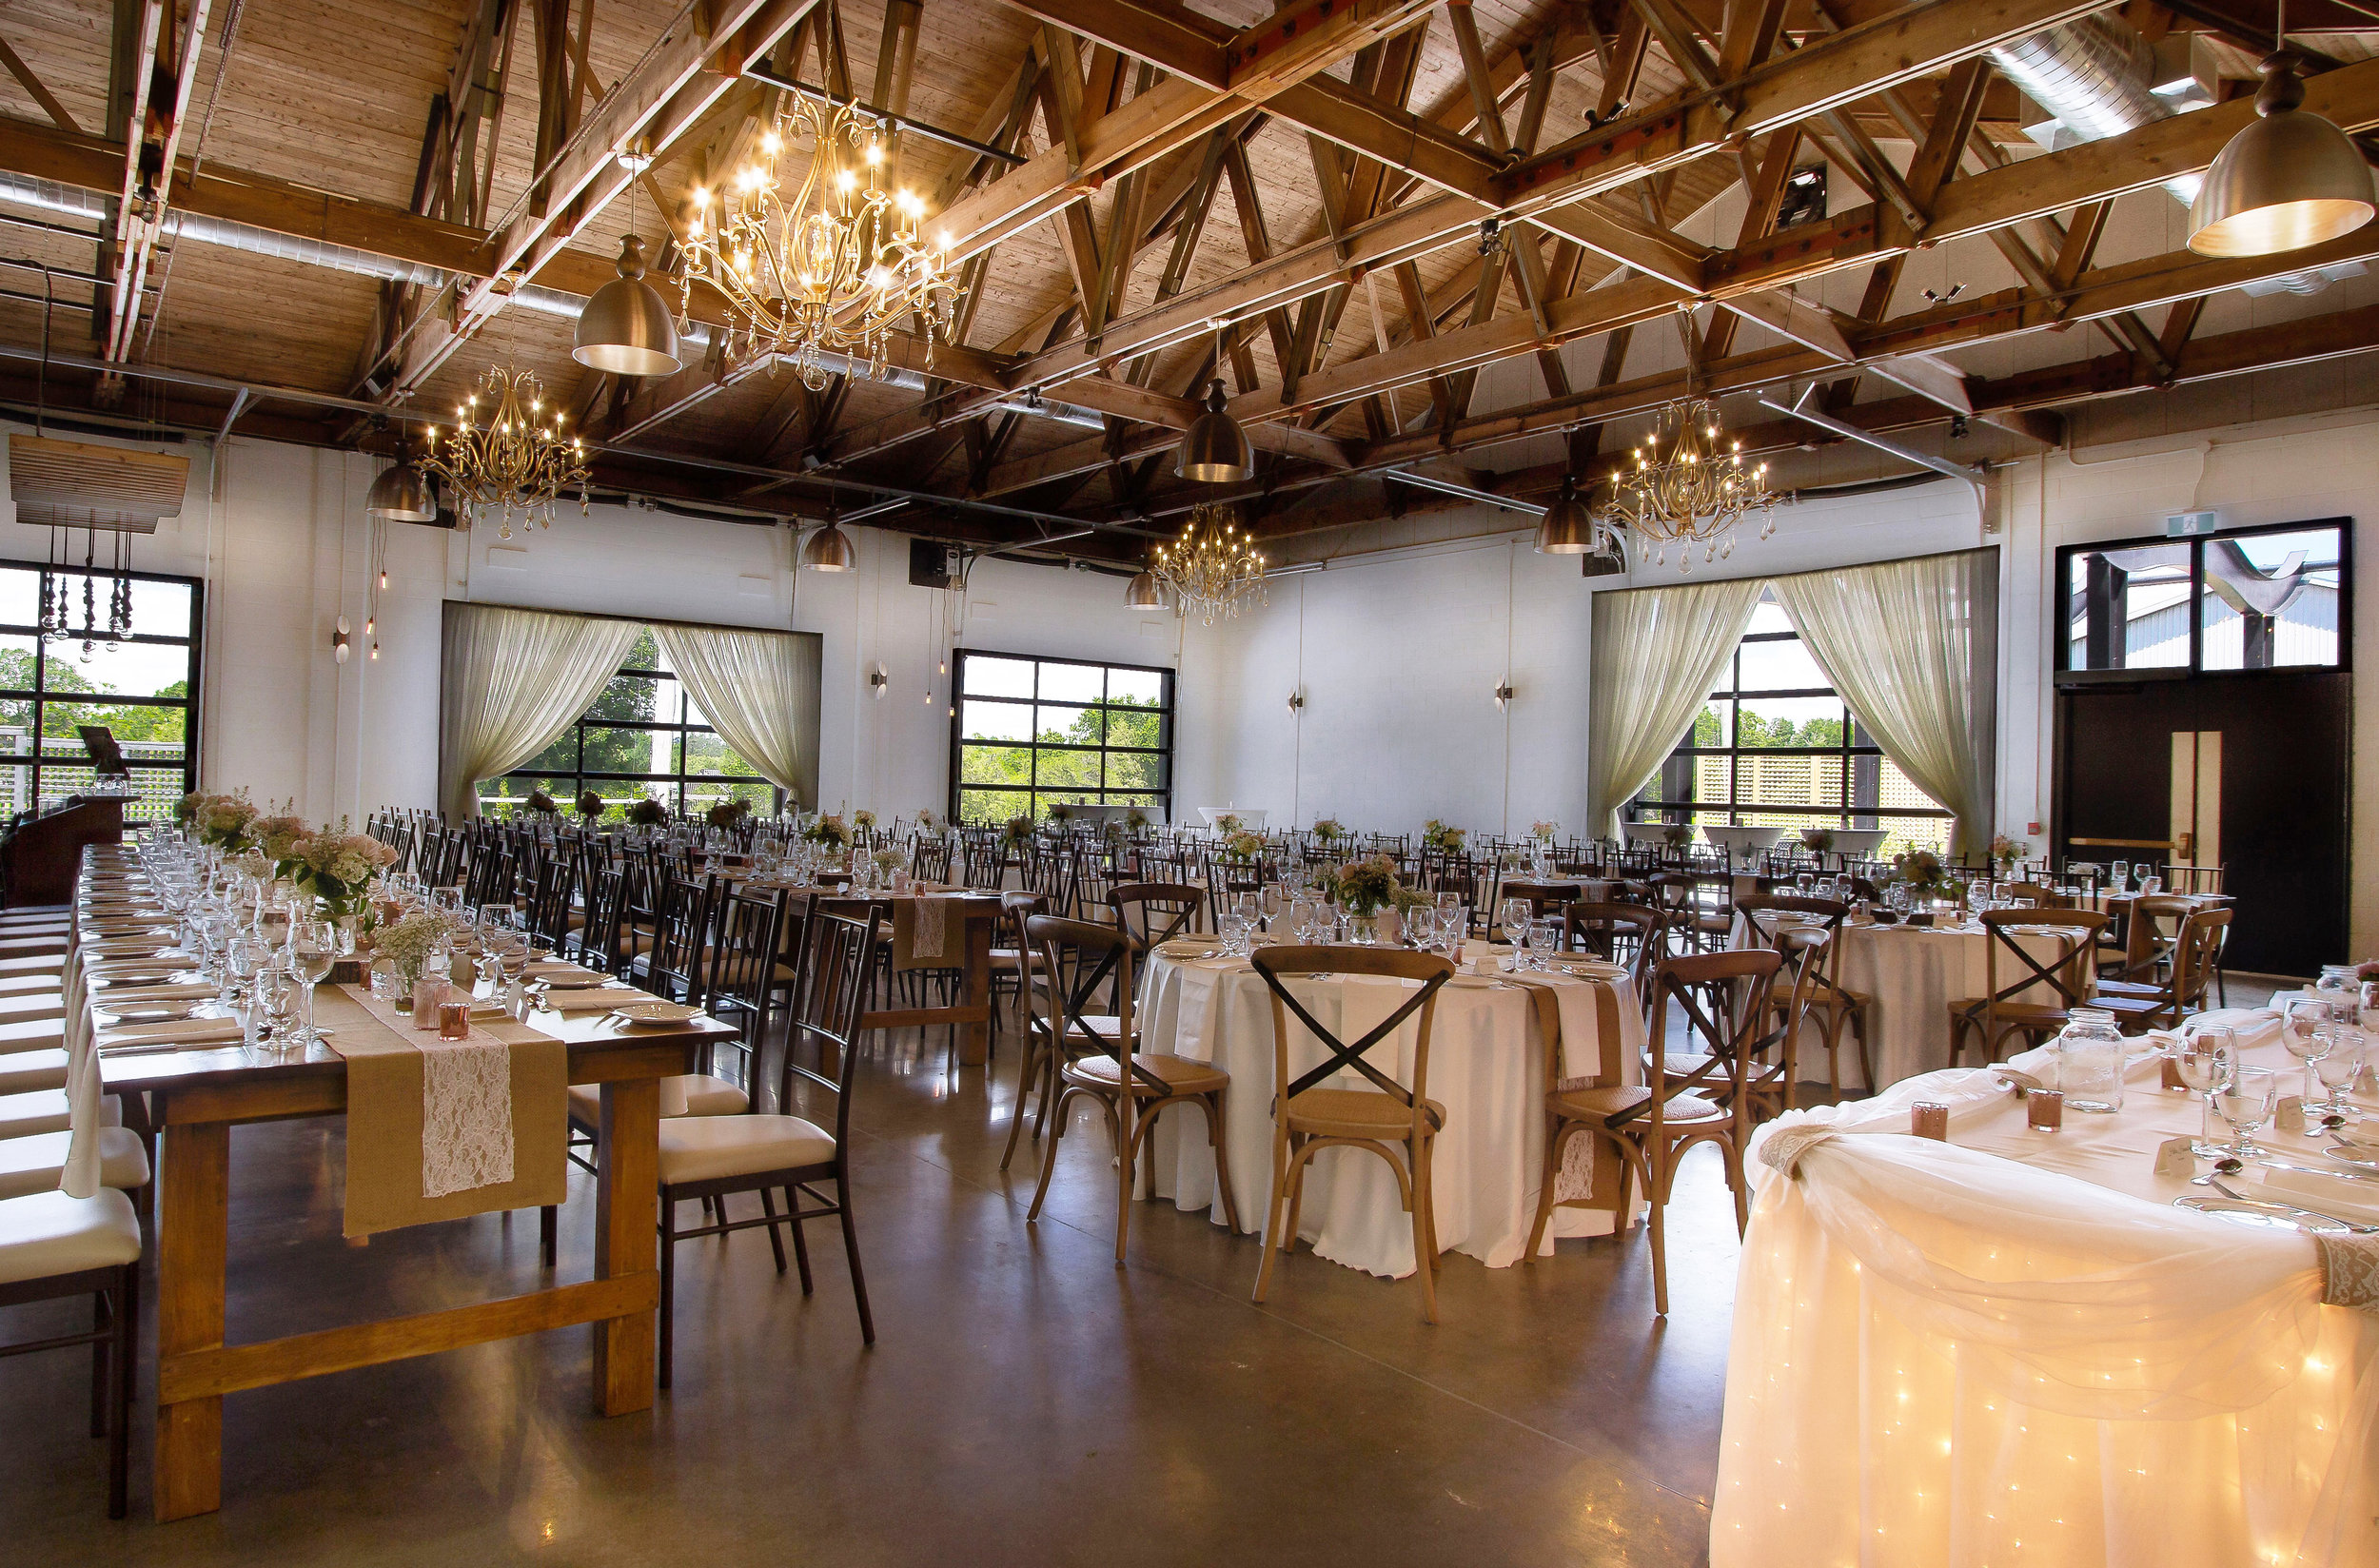 The Hideaway    at St. Marys Golf & Country Club introduces a true rustic wedding venue in Ontario, with exposed wood beam ceilings, large glass garage doors, and polished concrete floors. Decor & Styling:    Above & Beyond Event Design   . Photography: David Jordan.